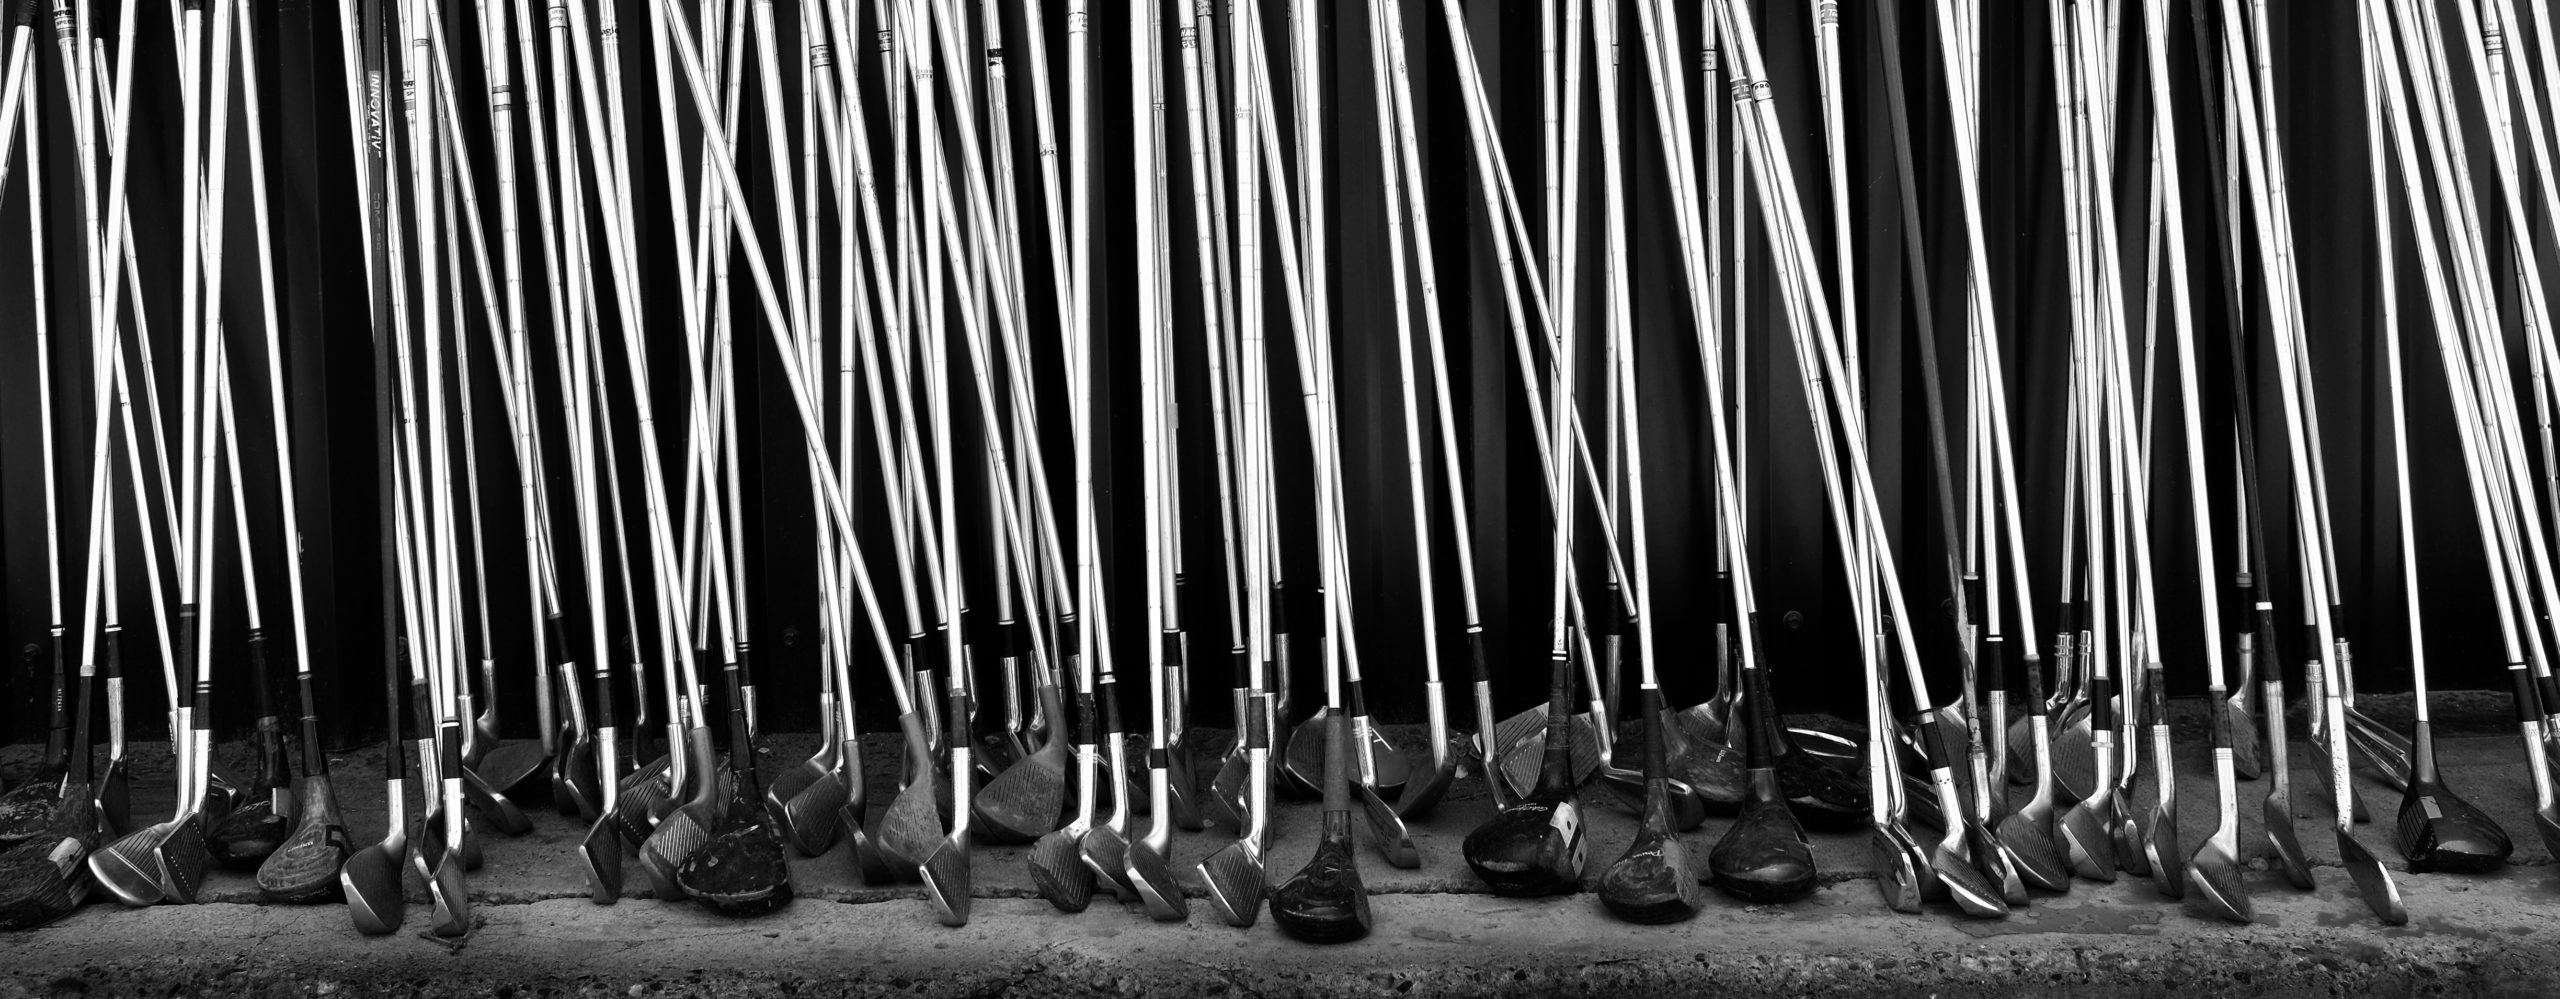 Advice on Buying Second Hand Golf Clubs   Golf Geeks